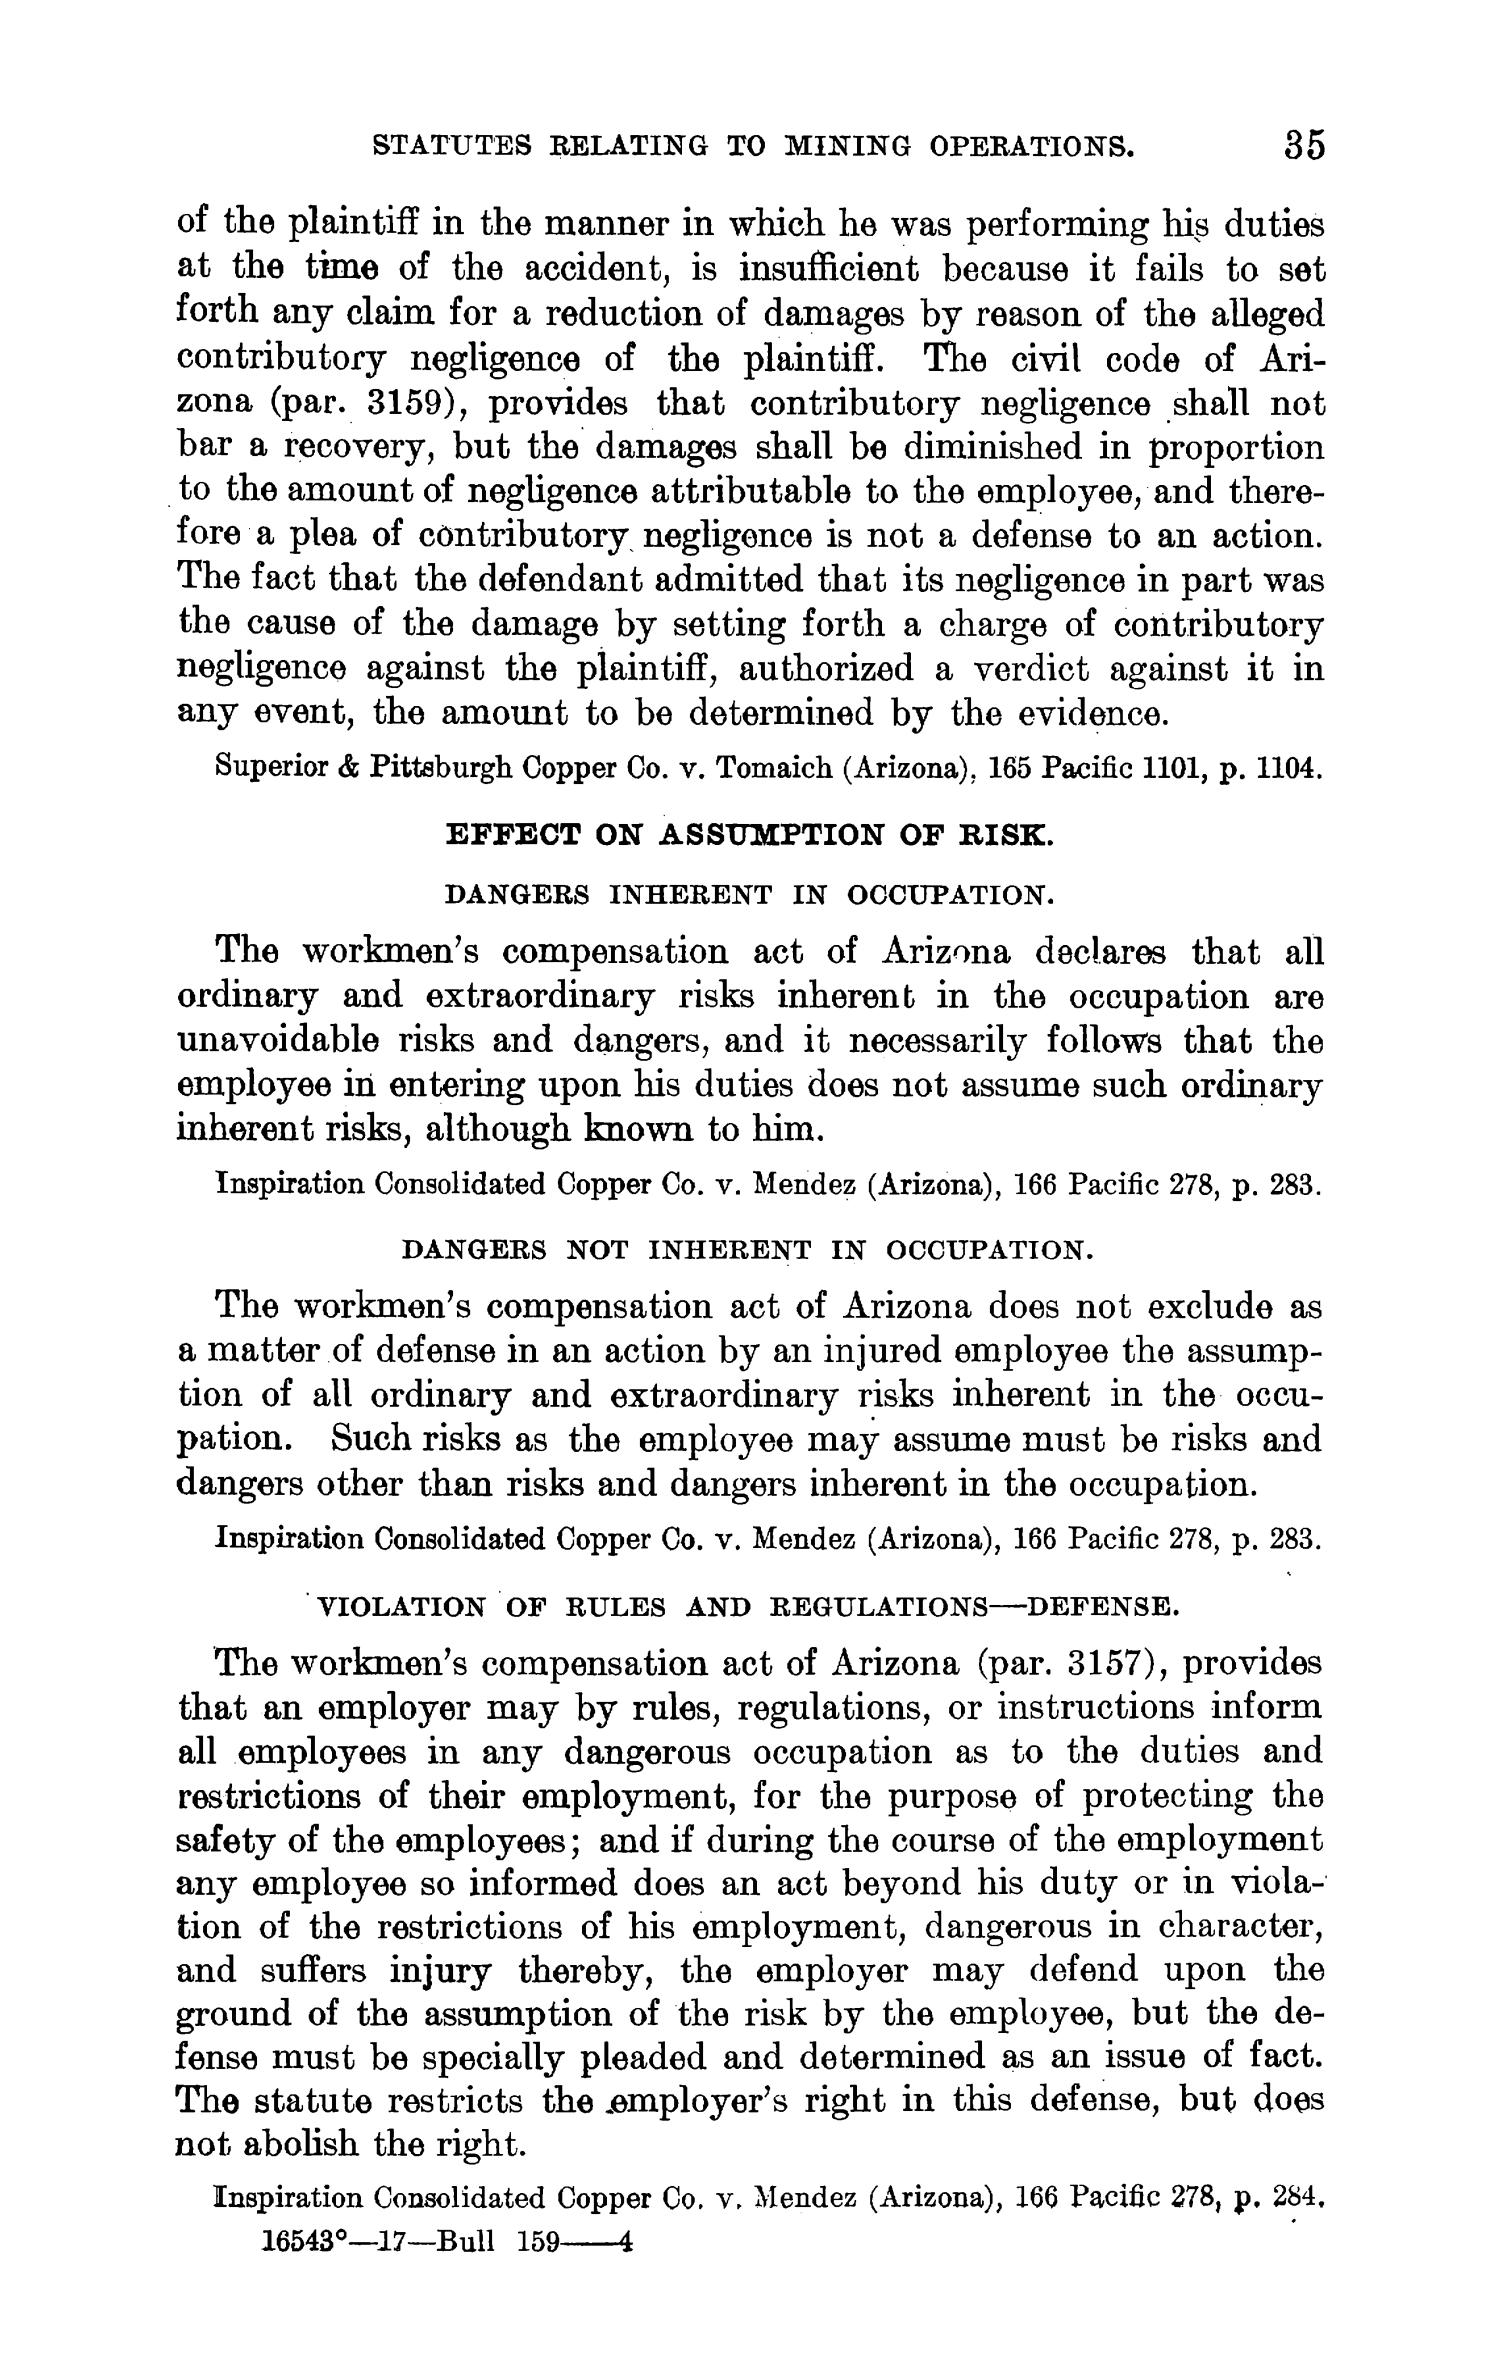 Abstracts of Current Decisions on Mines and Mining: May to August, 1917                                                                                                      35